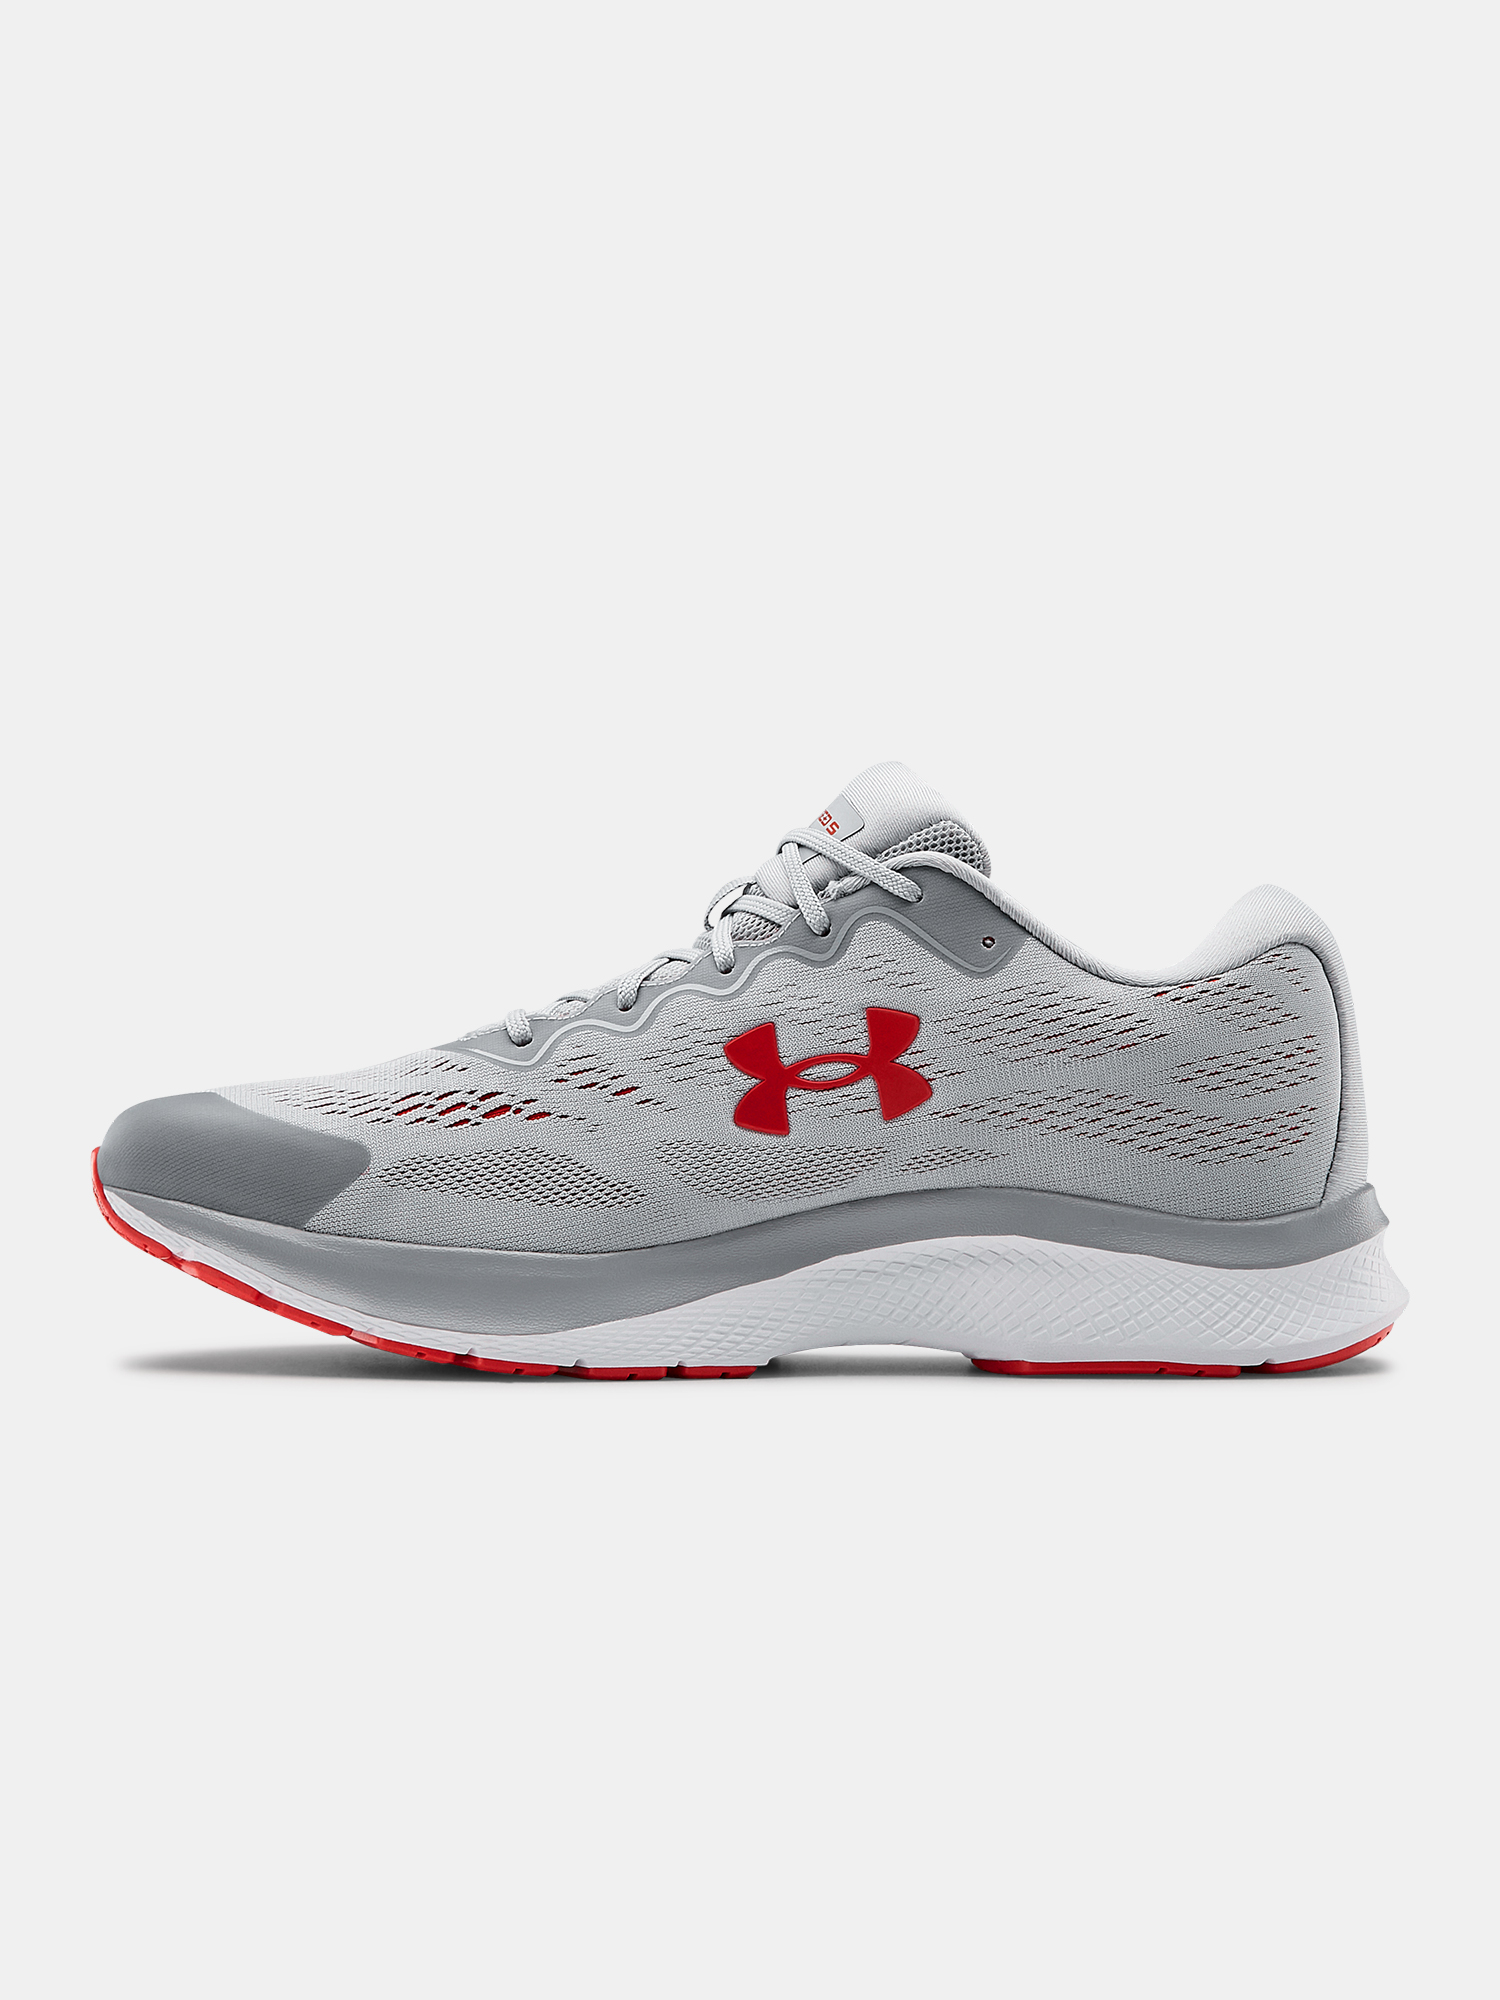 Boty Under Armour UA Charged Bandit 6-GRY (2)